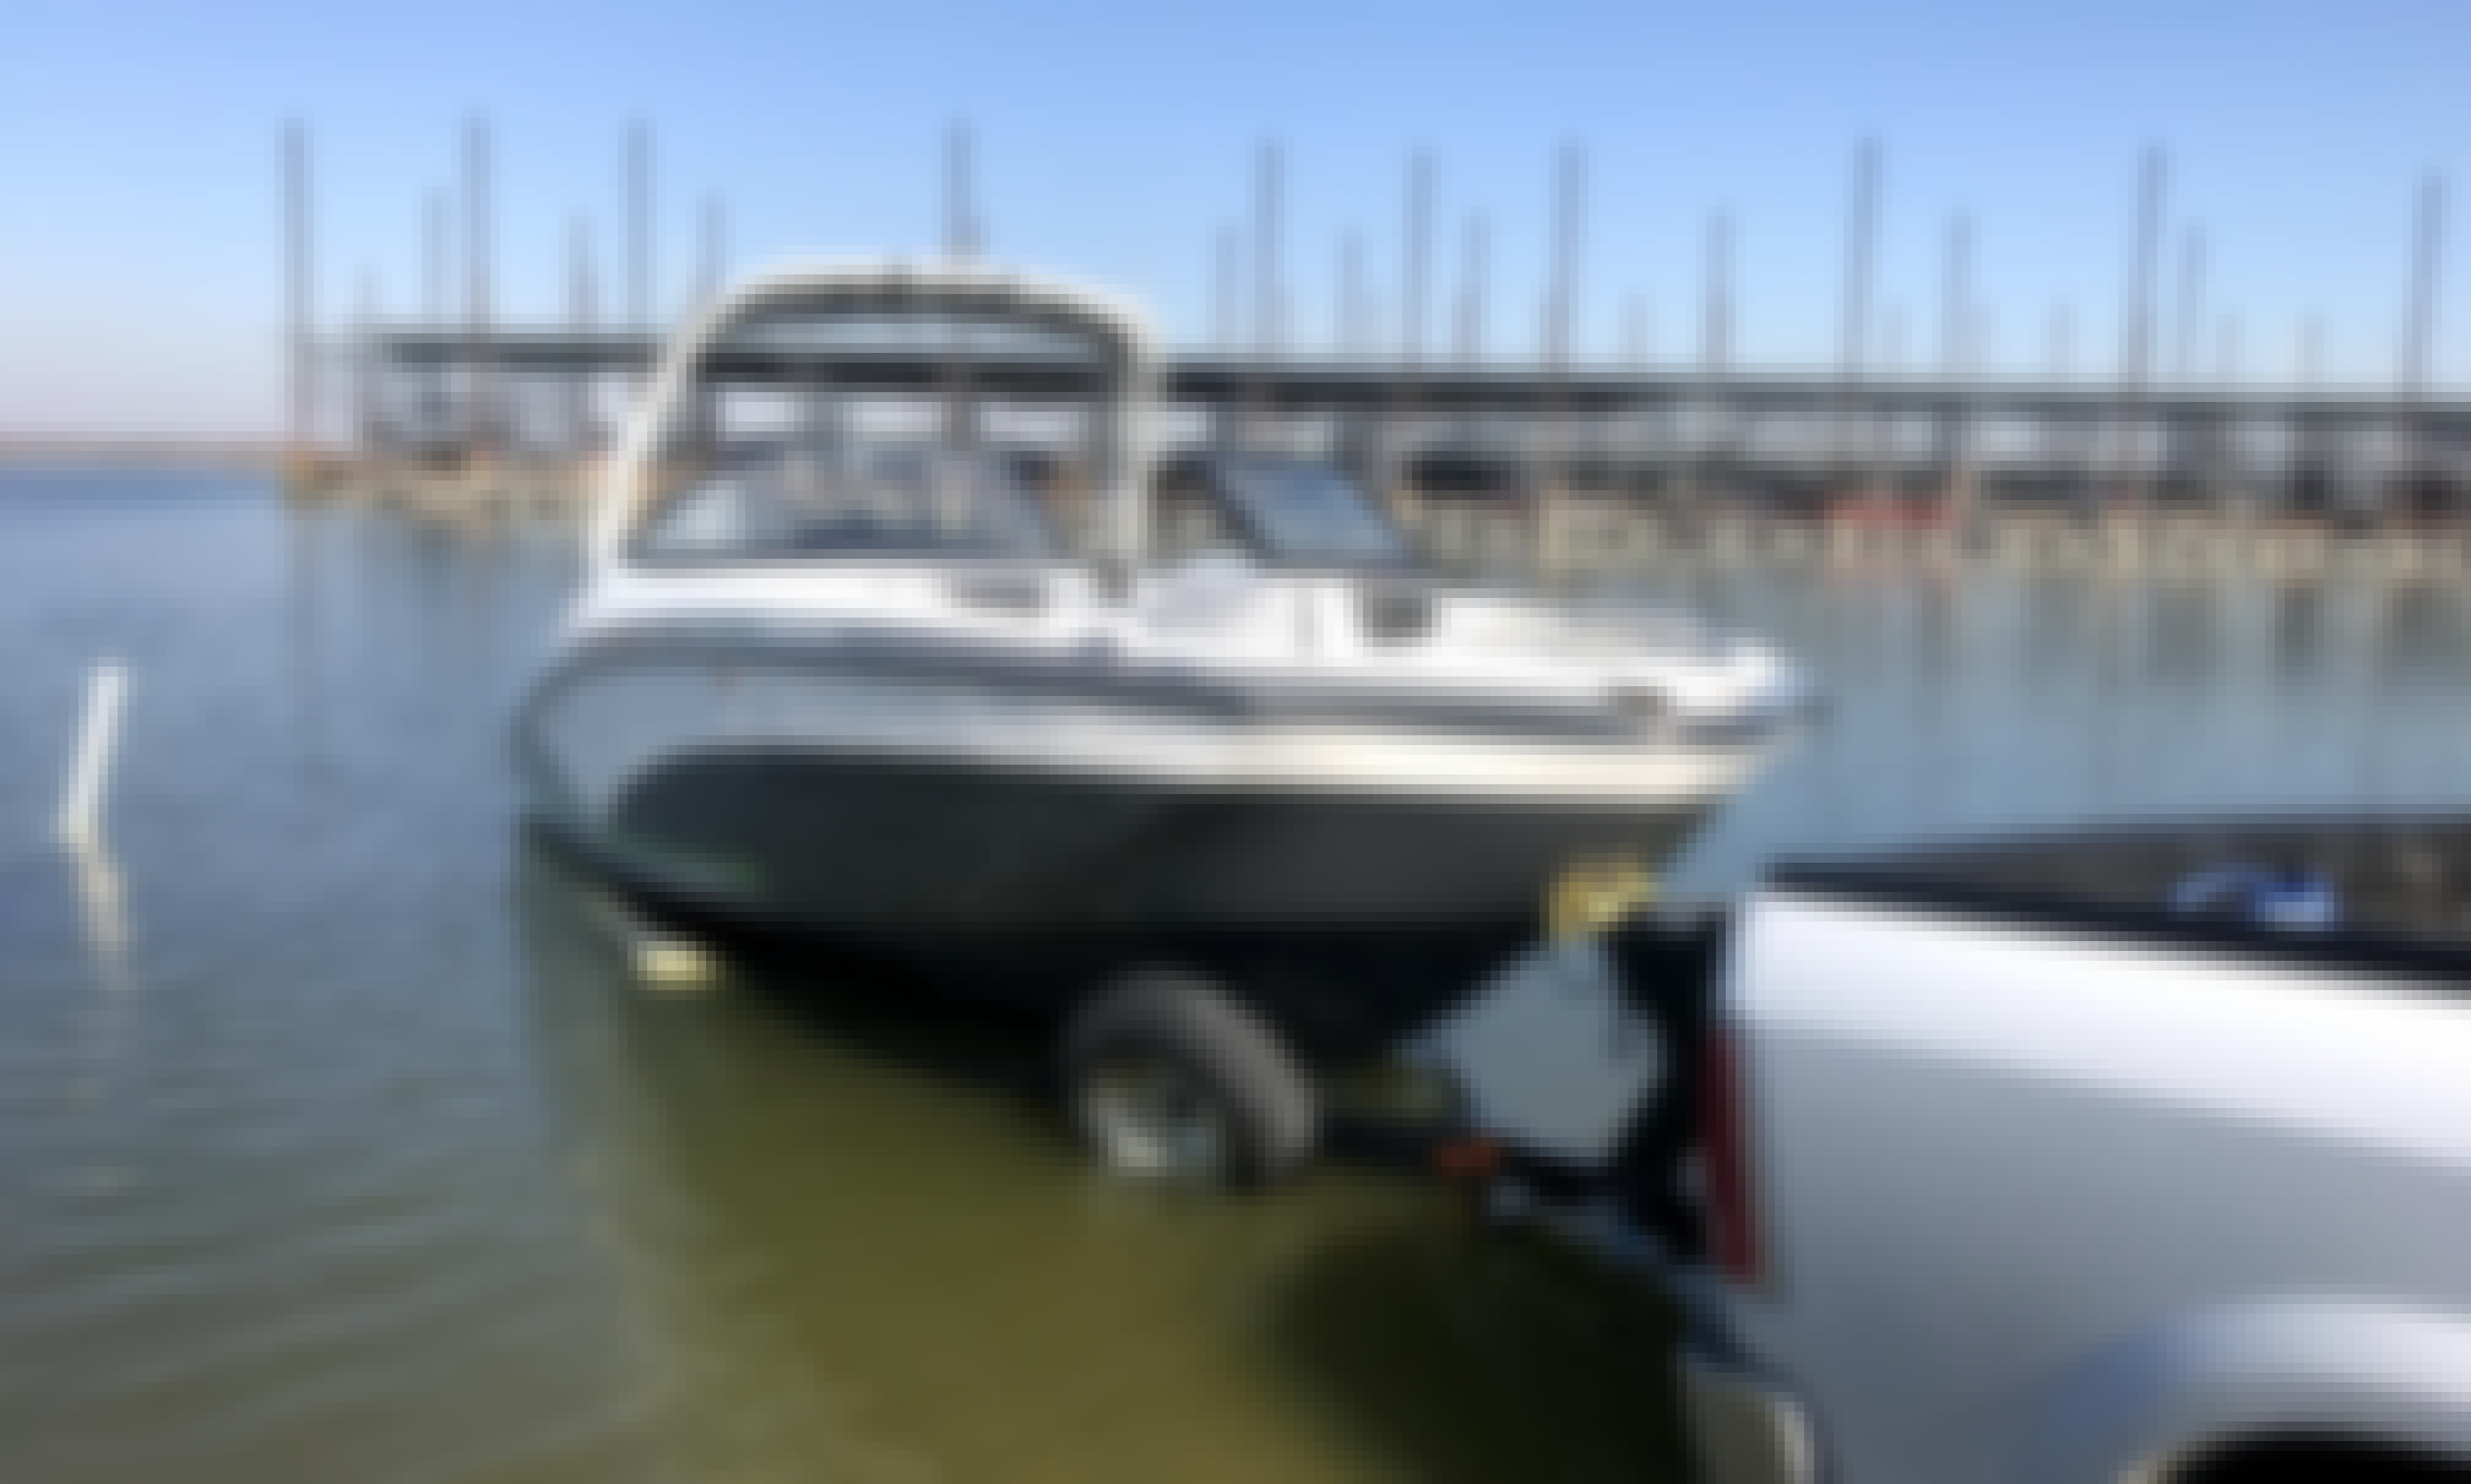 Latest model 24' Yamaha! You pick the place and time: Party Cove/Wakeboarding/Tubing/Sunsets